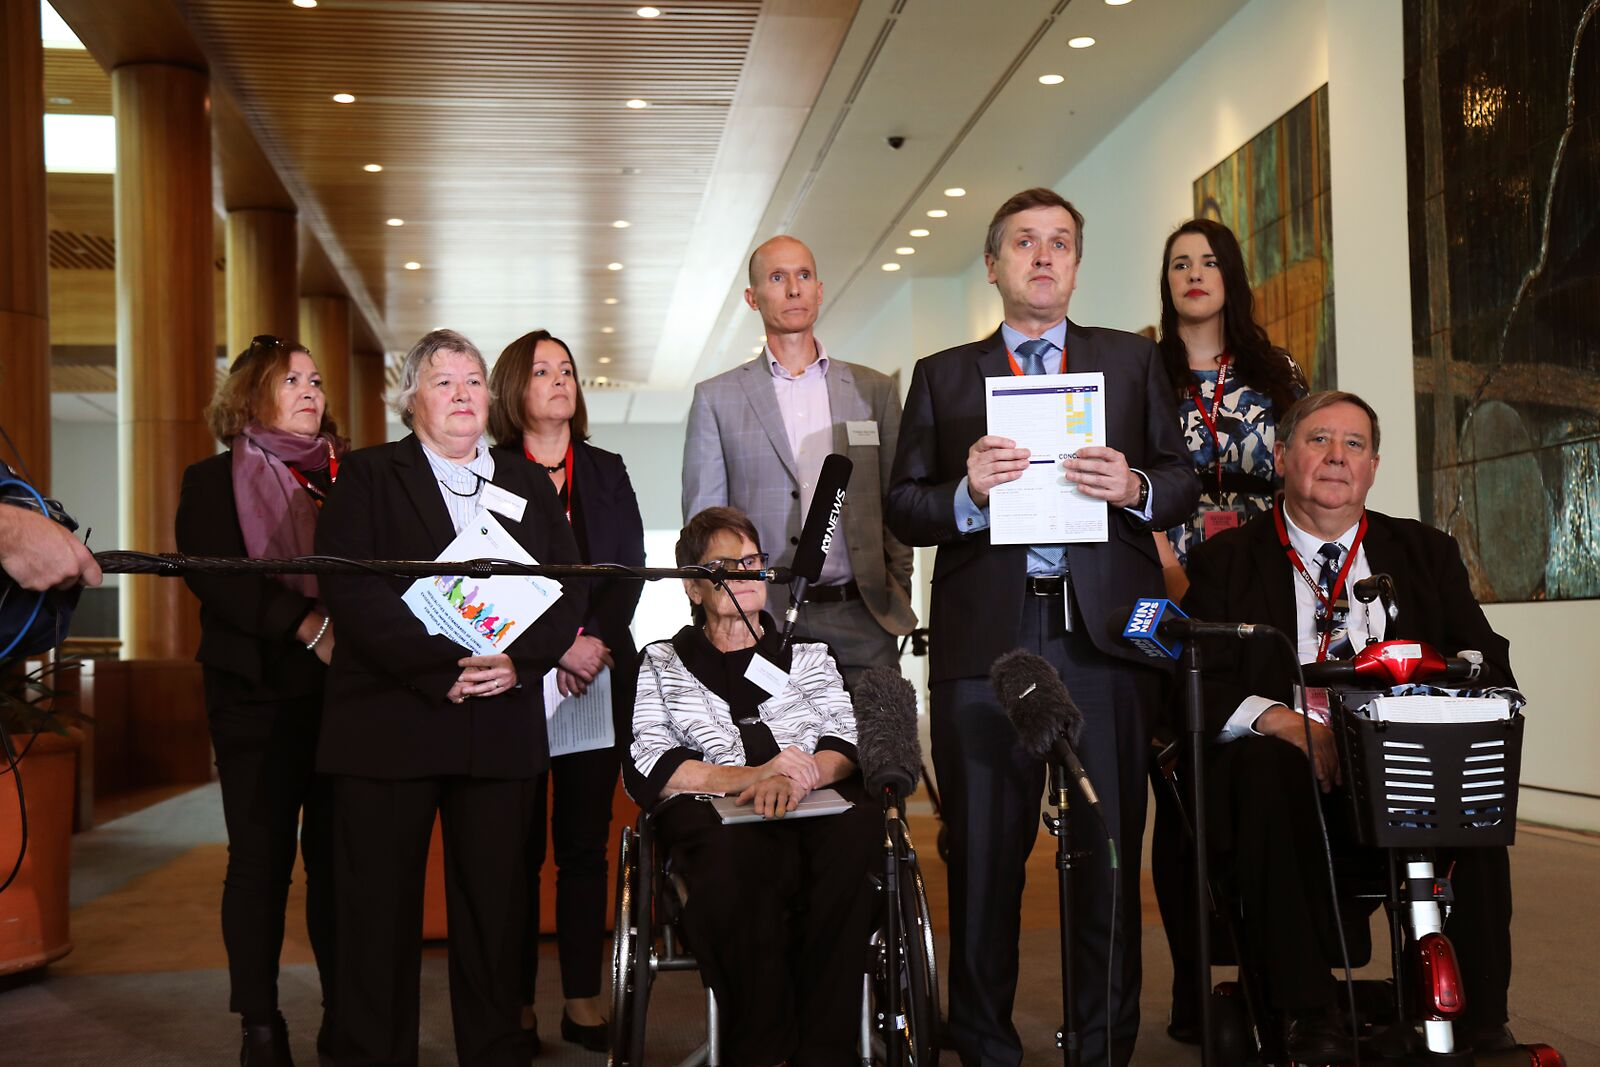 Disability advocates & researchers in a group addressing the media. At the front is AFDO CEO, Ross Joyce speaking to the media.